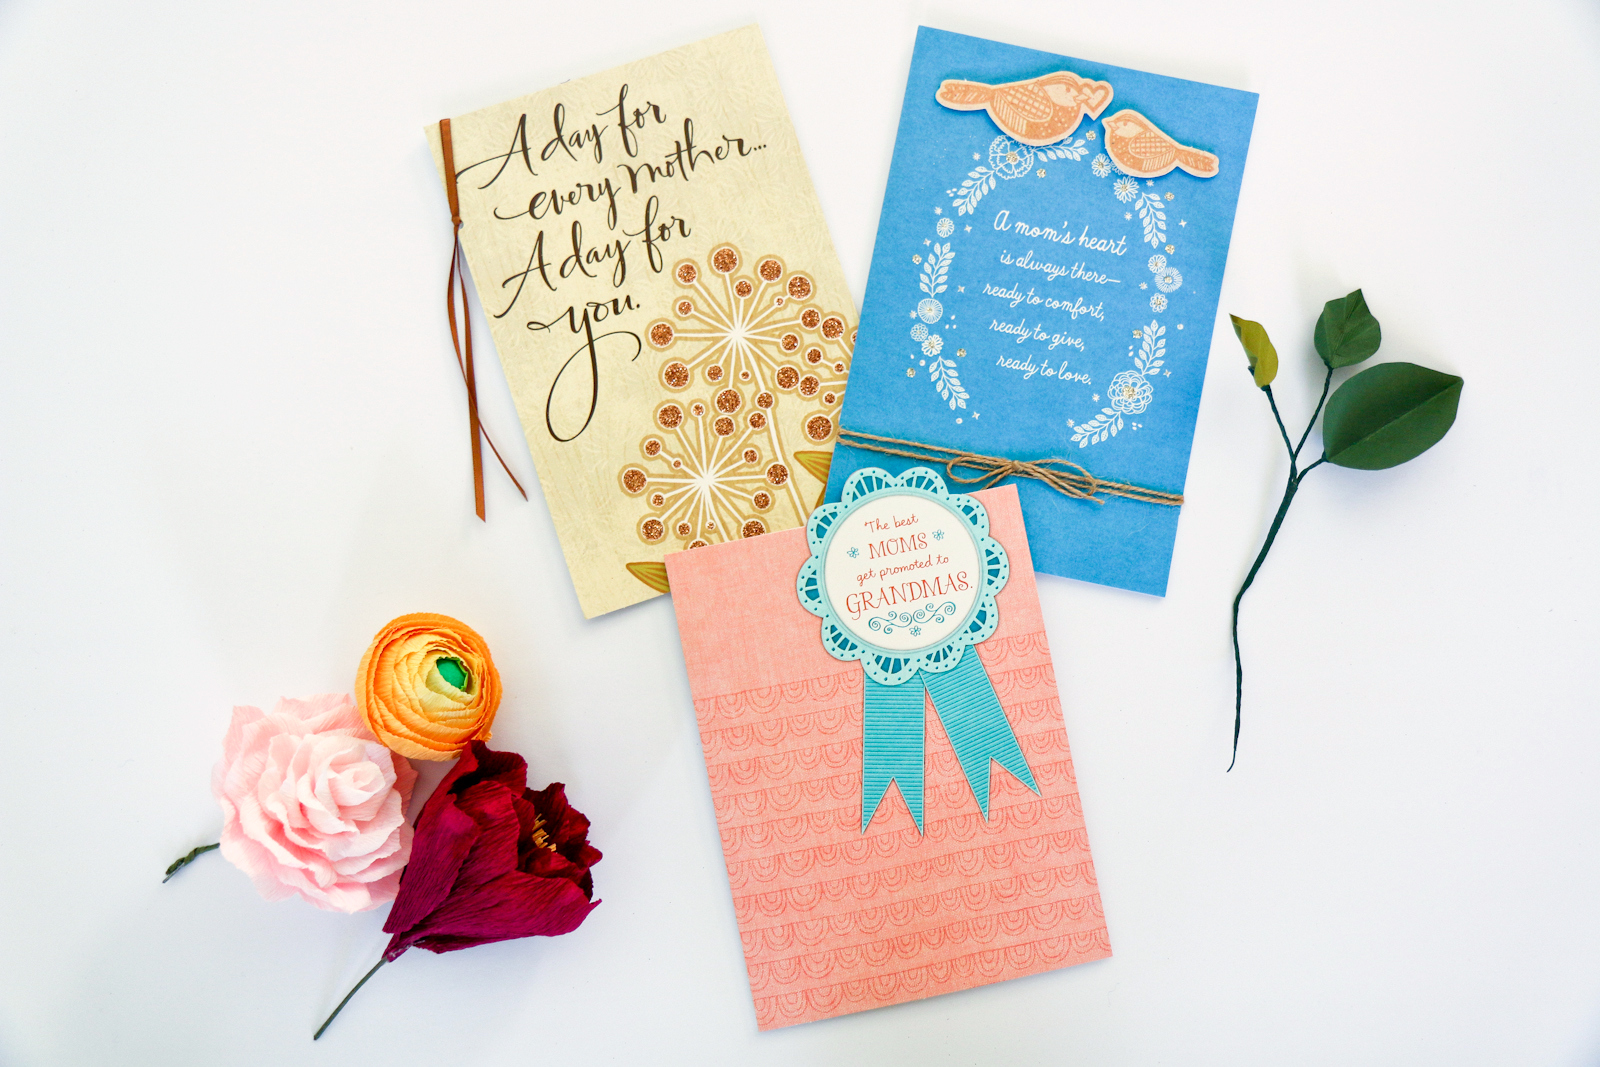 Sandy a la Mode | #PutYourHeartToPaper with Hallmark for Mother's Day